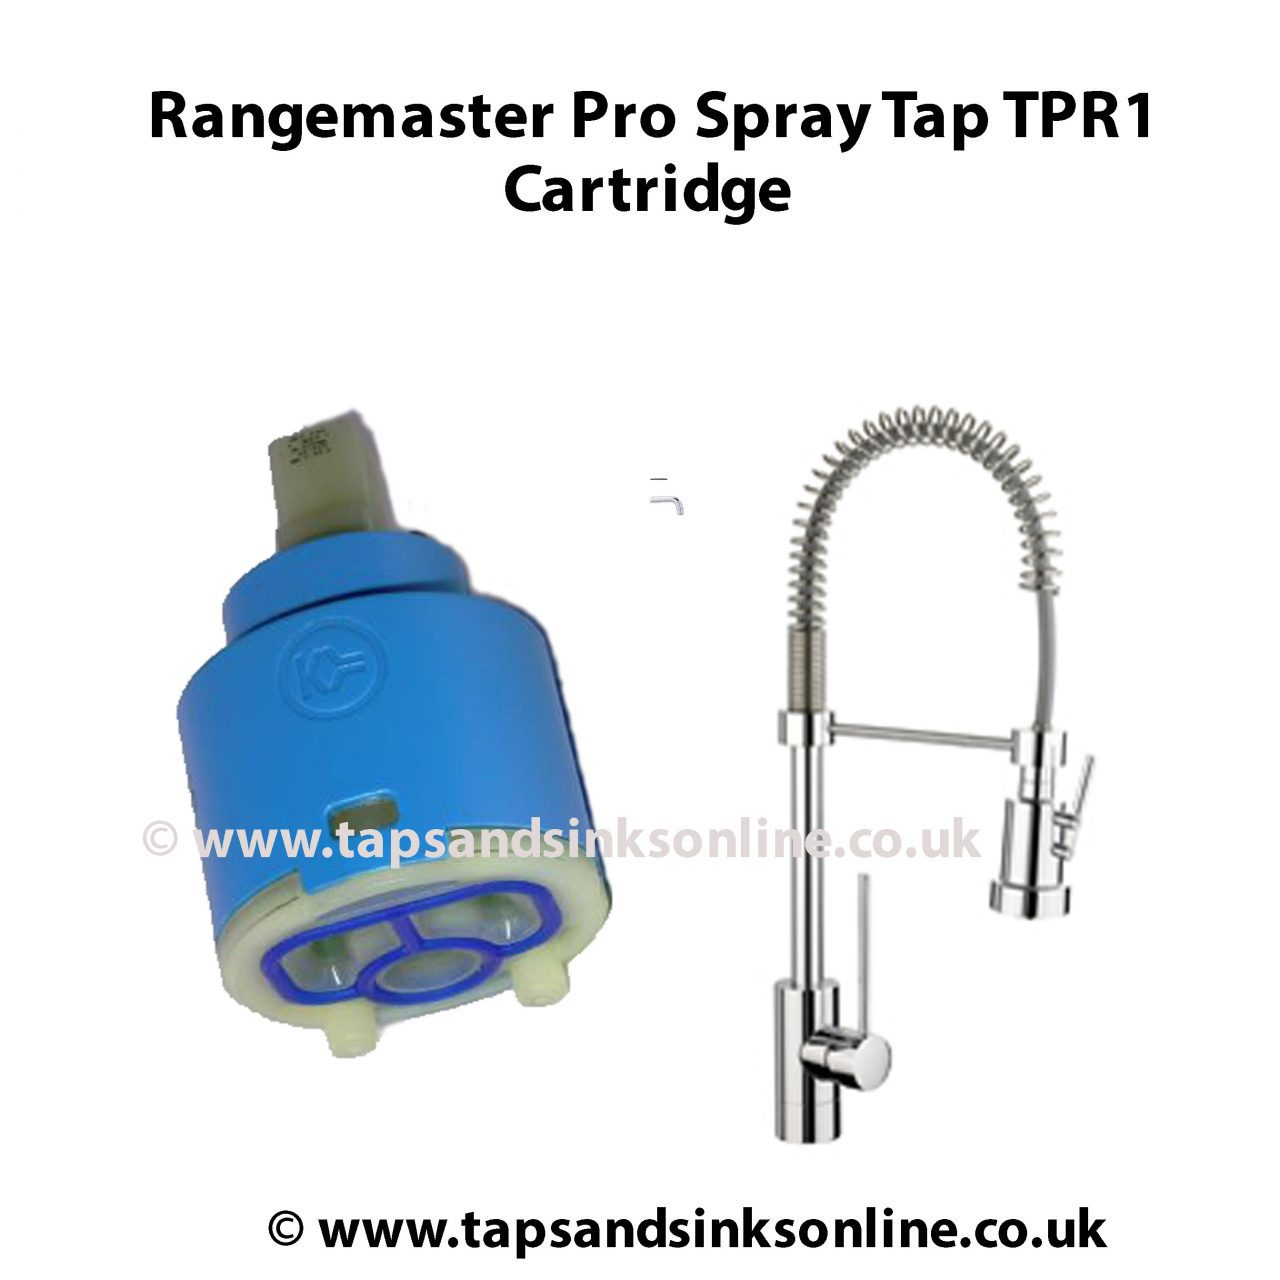 Rangemaster Pro Spray Tap TPR1 Cartridge | Rangemaster Tap Parts ...